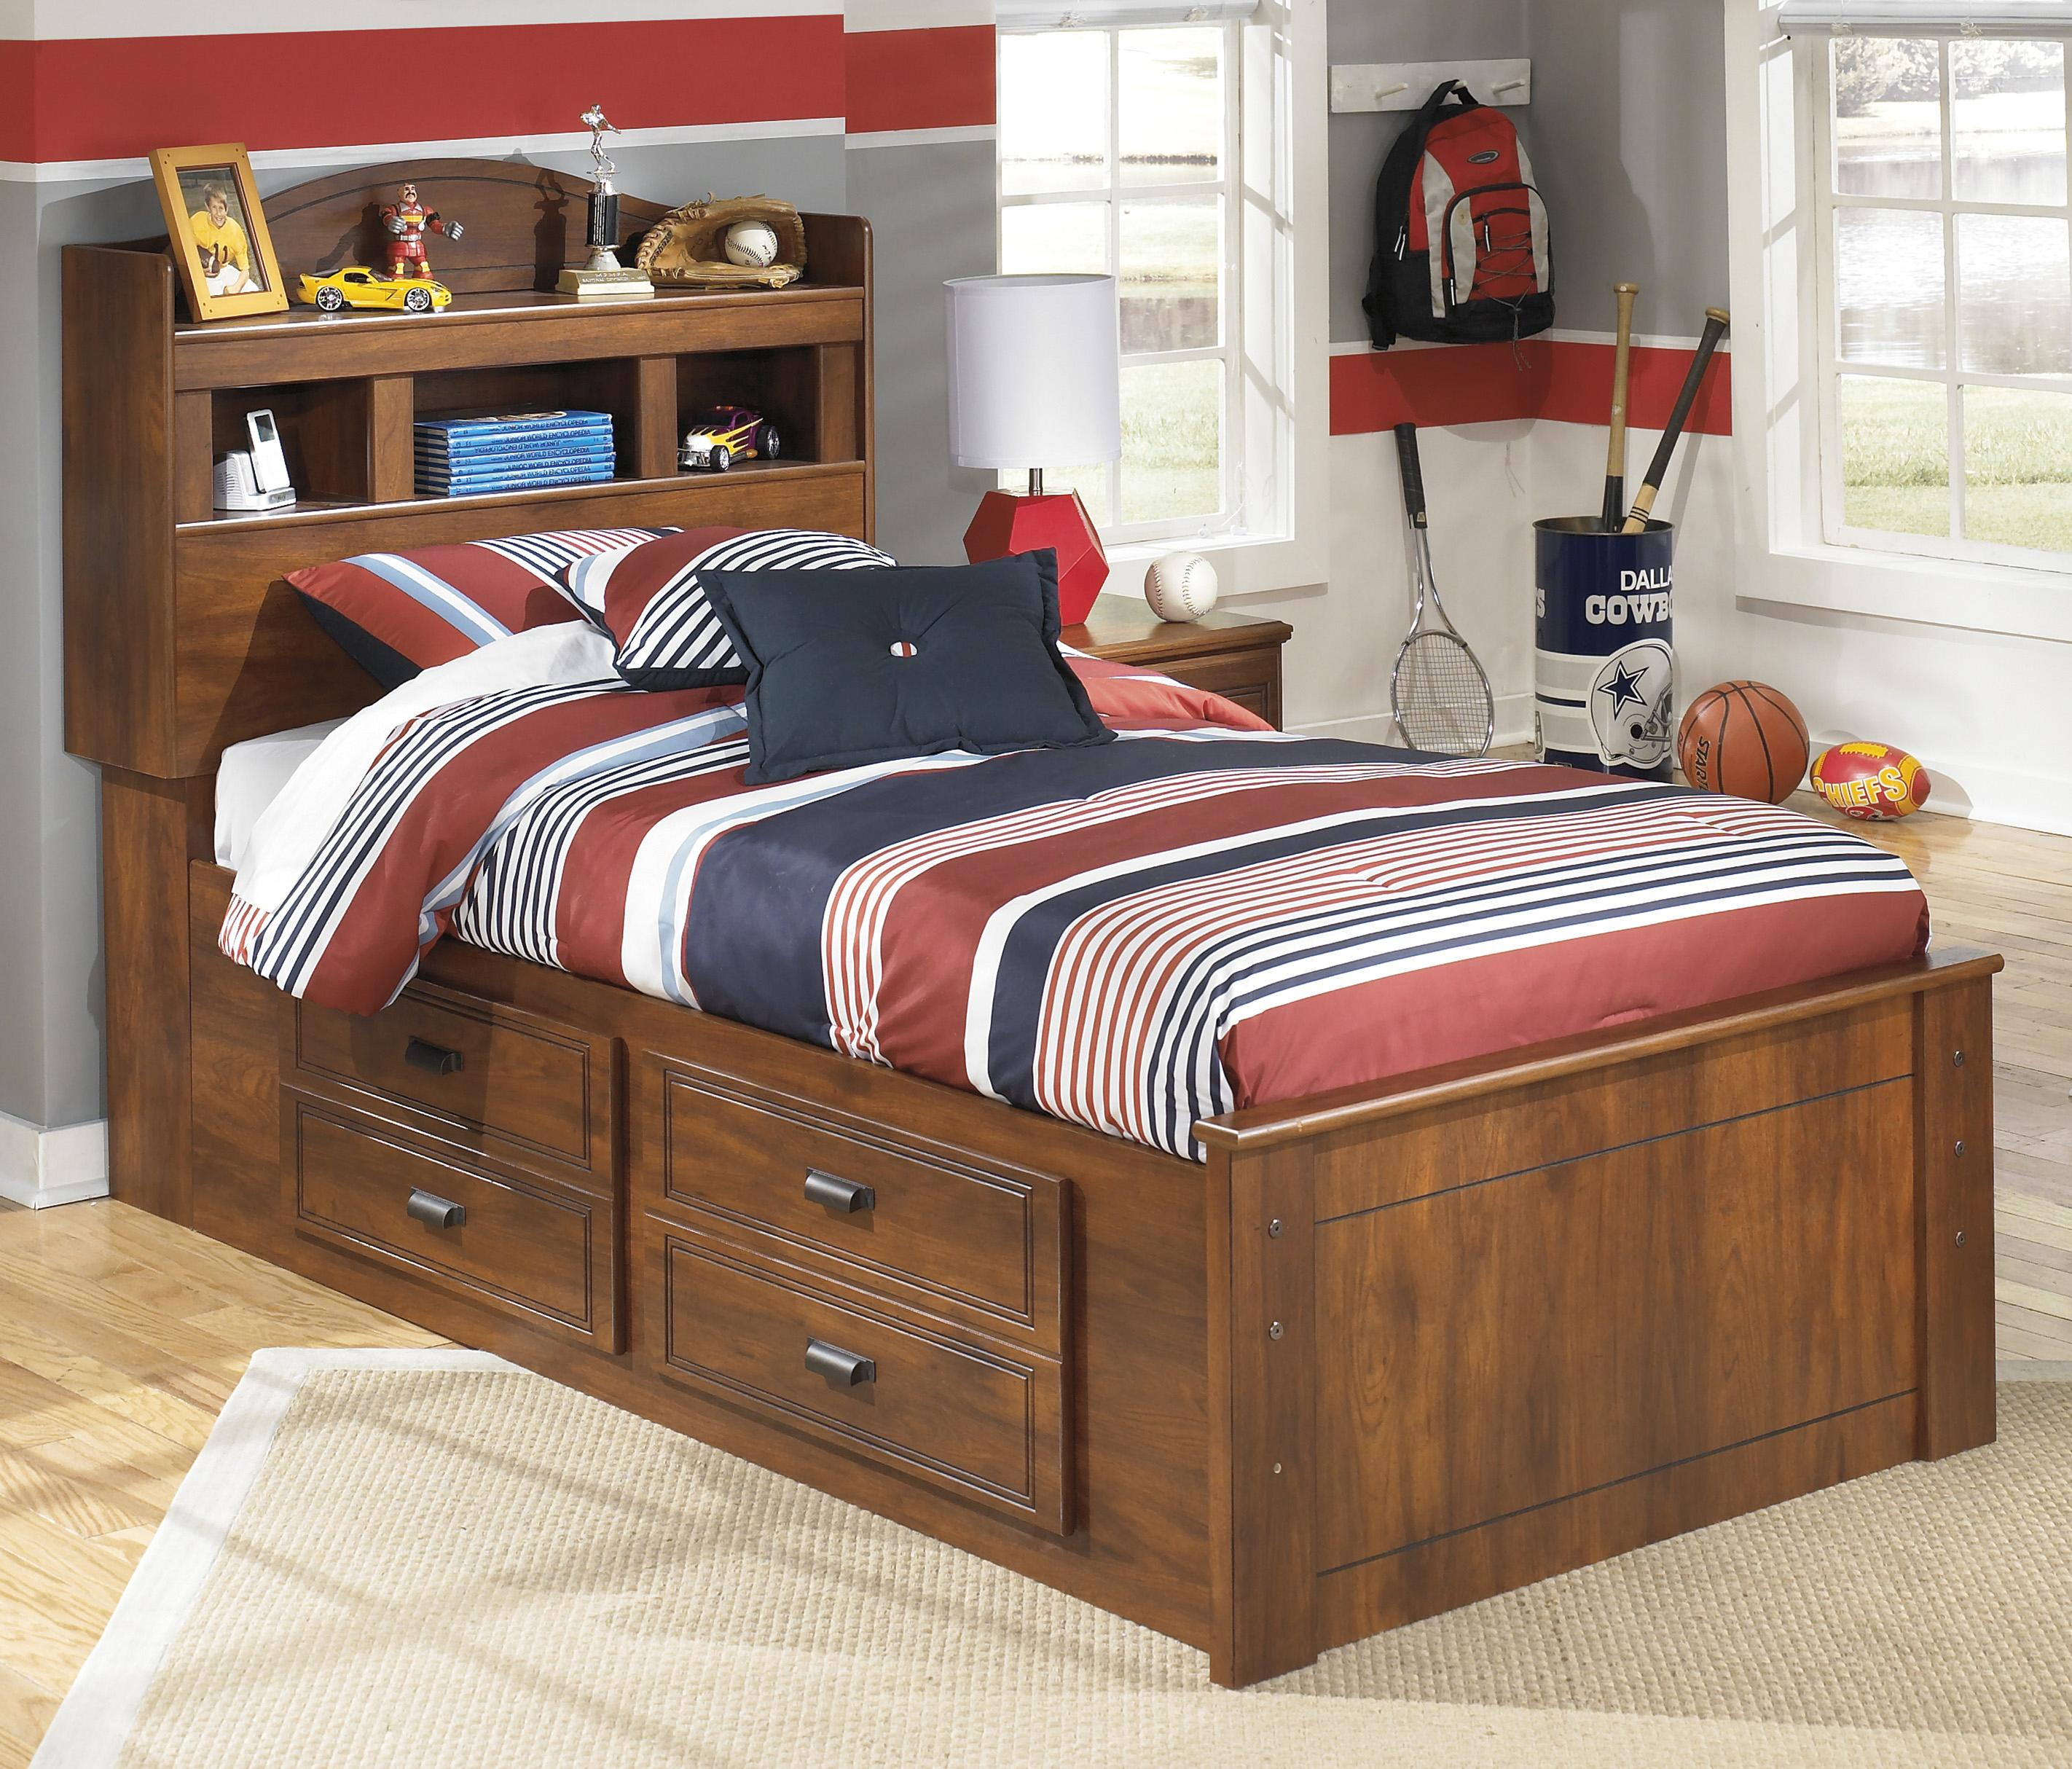 signature design by ashley barchan twin bookcase bed with underbed storage value city. Black Bedroom Furniture Sets. Home Design Ideas